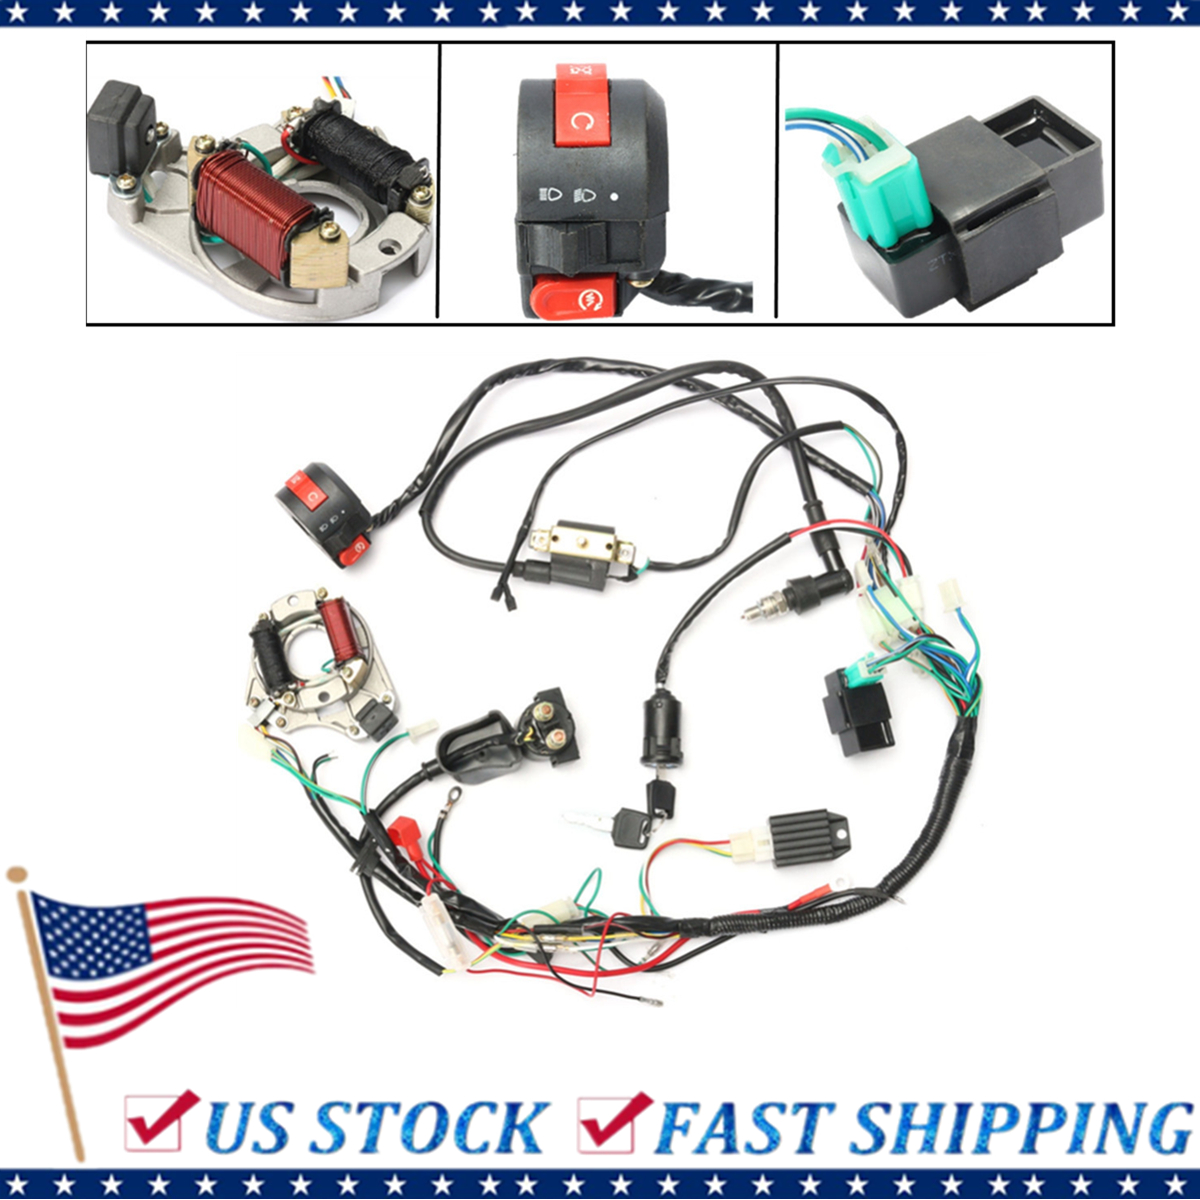 medium resolution of 1 set 50 70 90 110cc cdi wire harness assembly wiring kit atv1 set 50 70